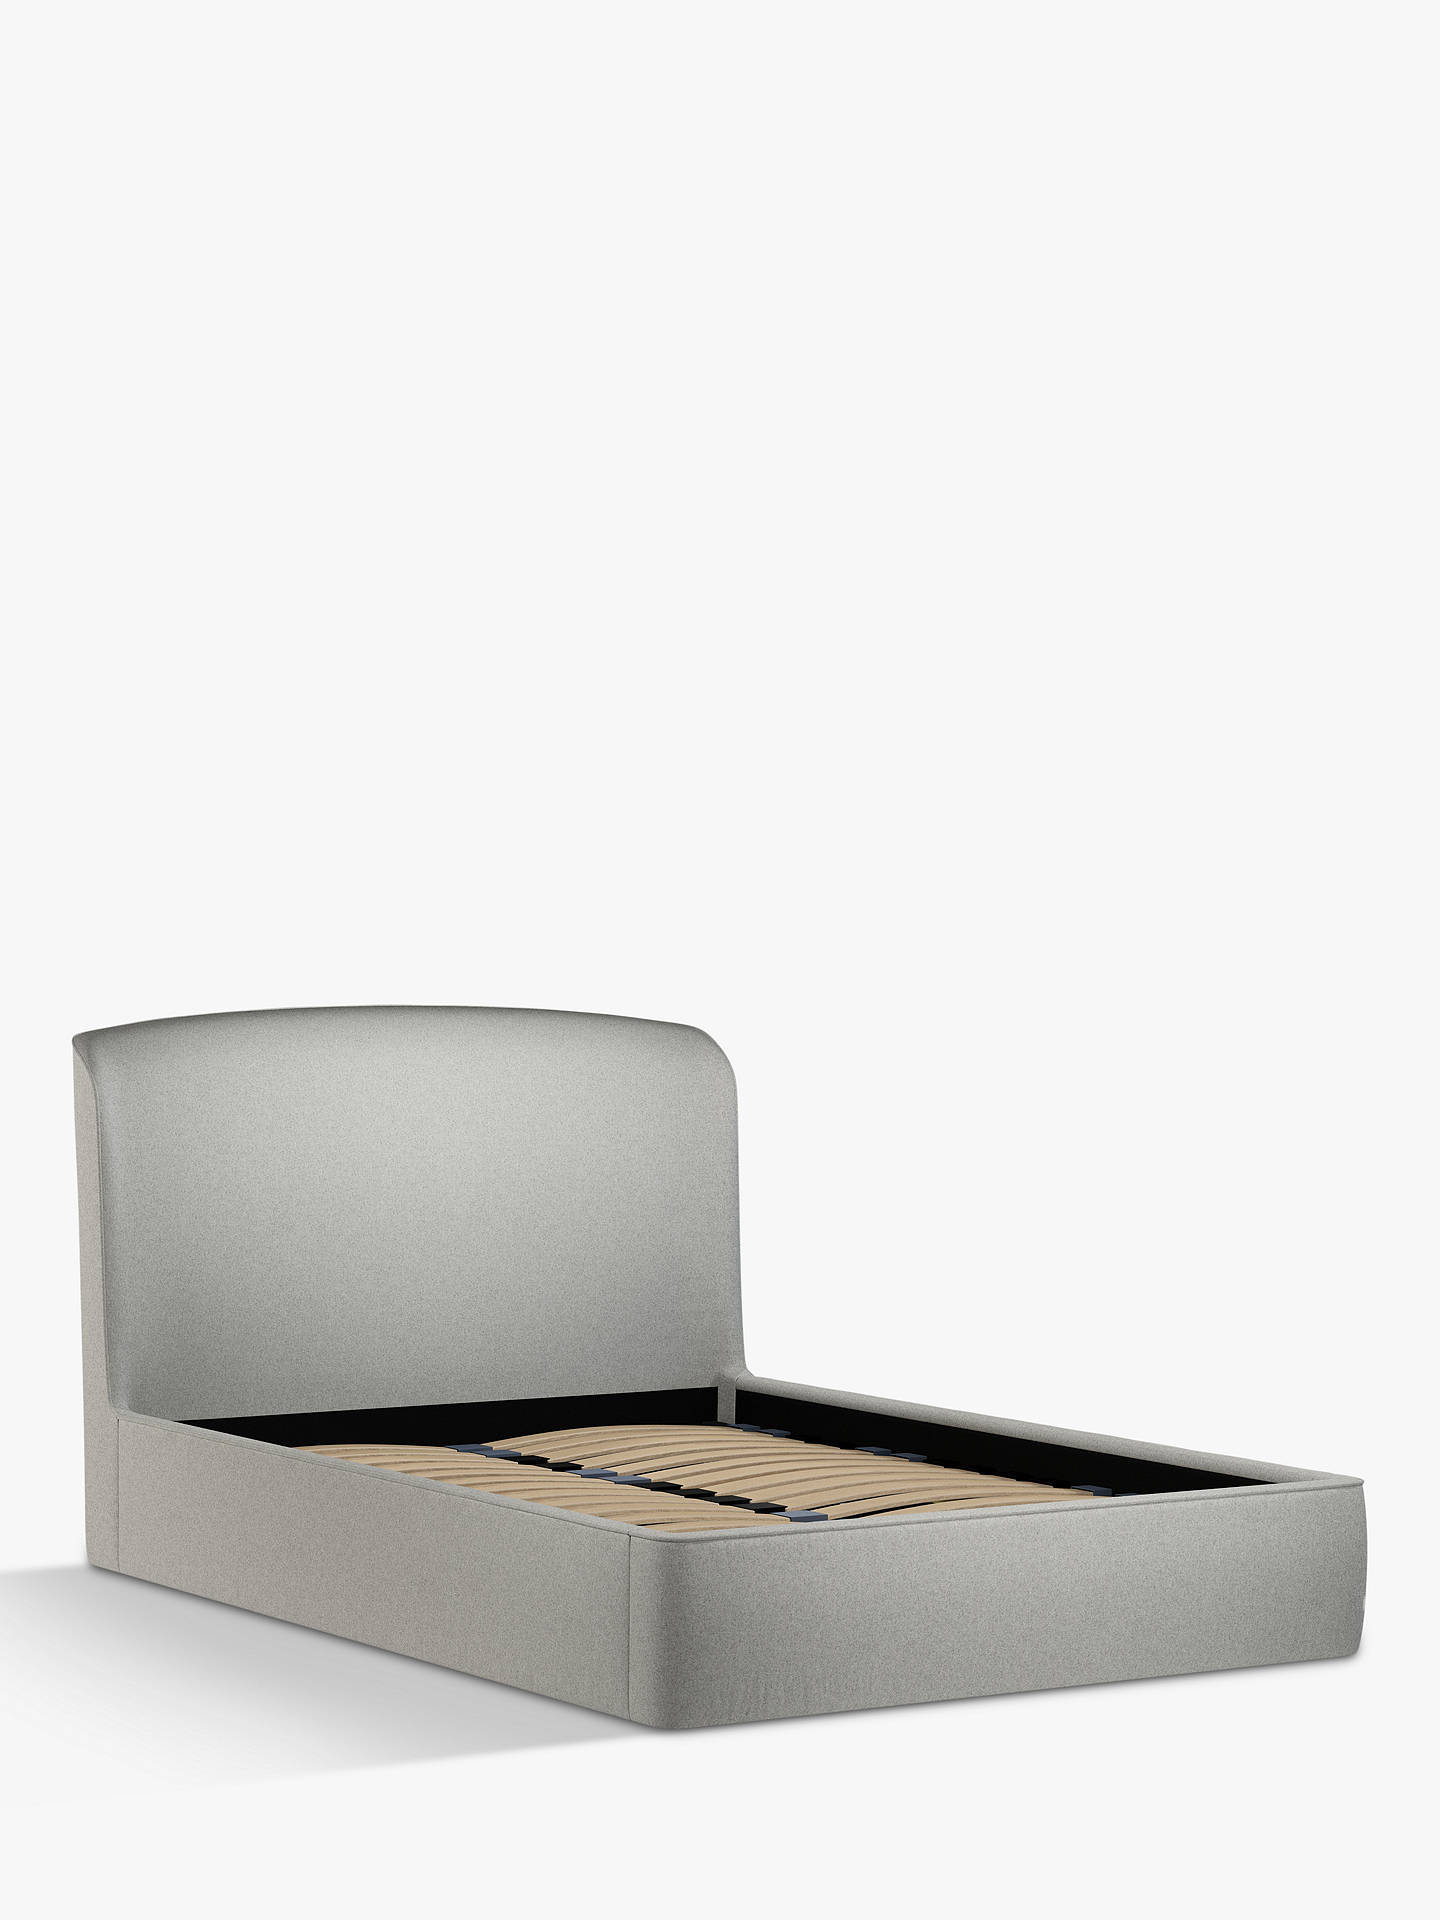 Buy Croft Collection Skye Ottoman Storage Upholstered Bed Frame, Double, Mole Grey Online at johnlewis.com